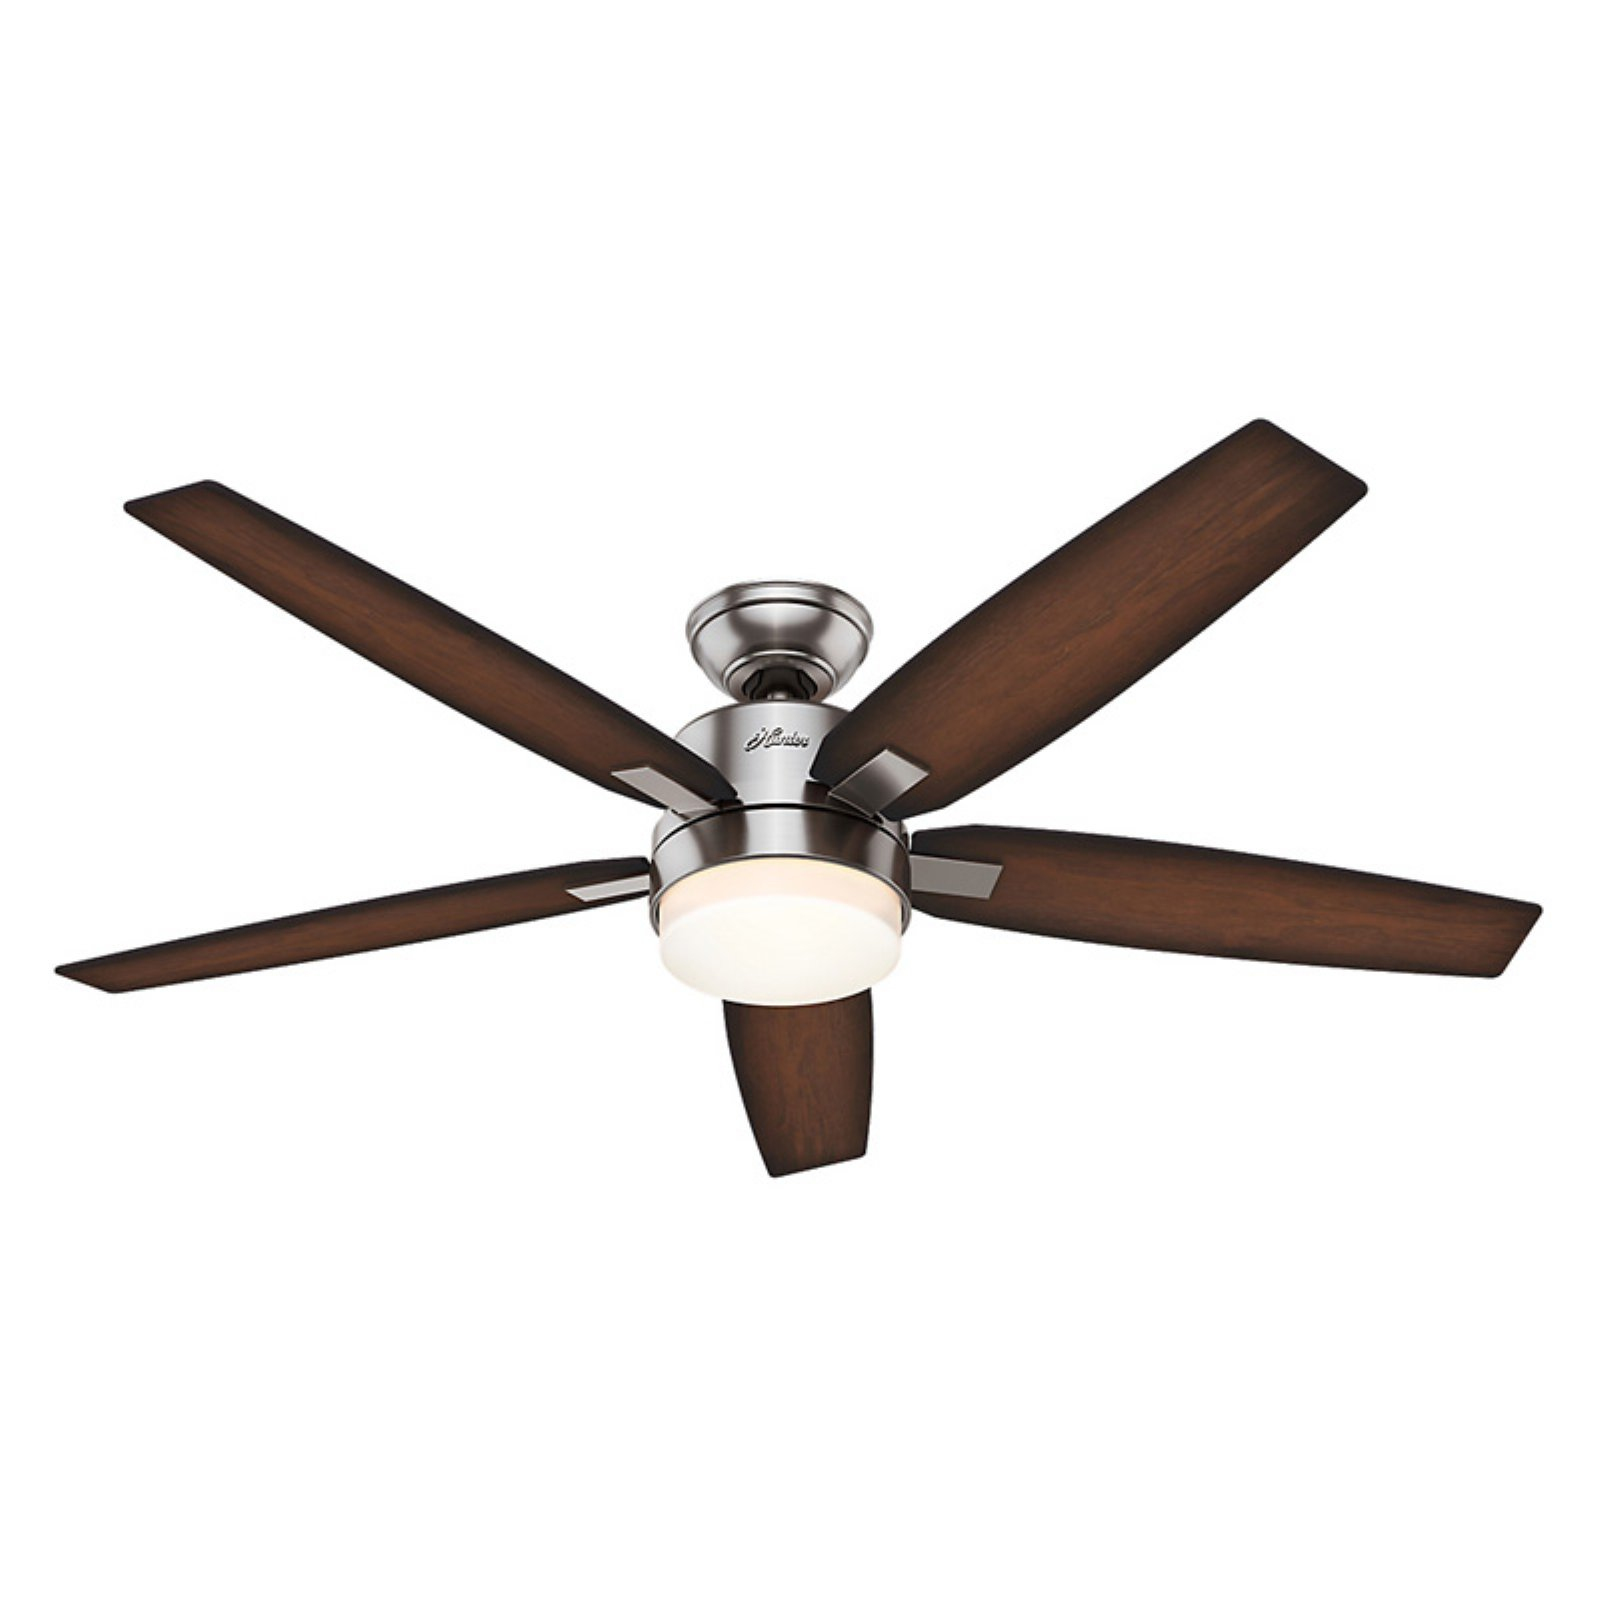 Hunter 59039 Windemere 54 in. Indoor Ceiling Fan with Light and Remote Brushed Nickel by Hunter